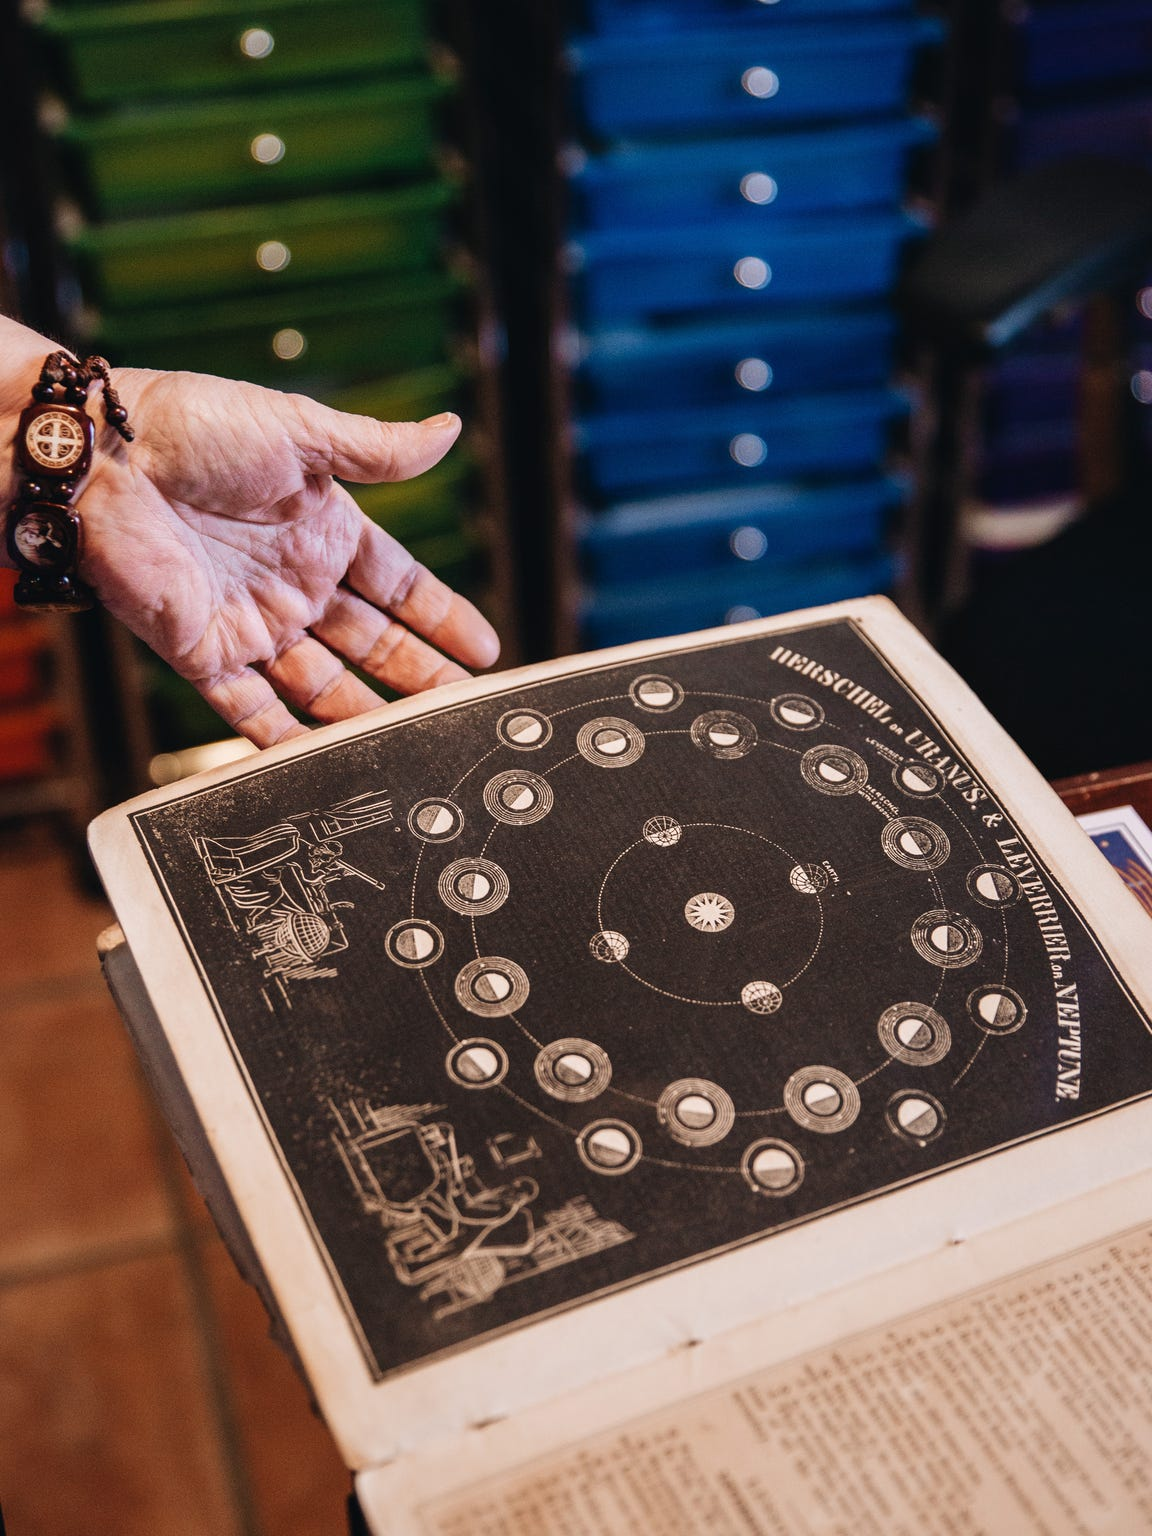 Dana Haynes opens an astrology book in her home.